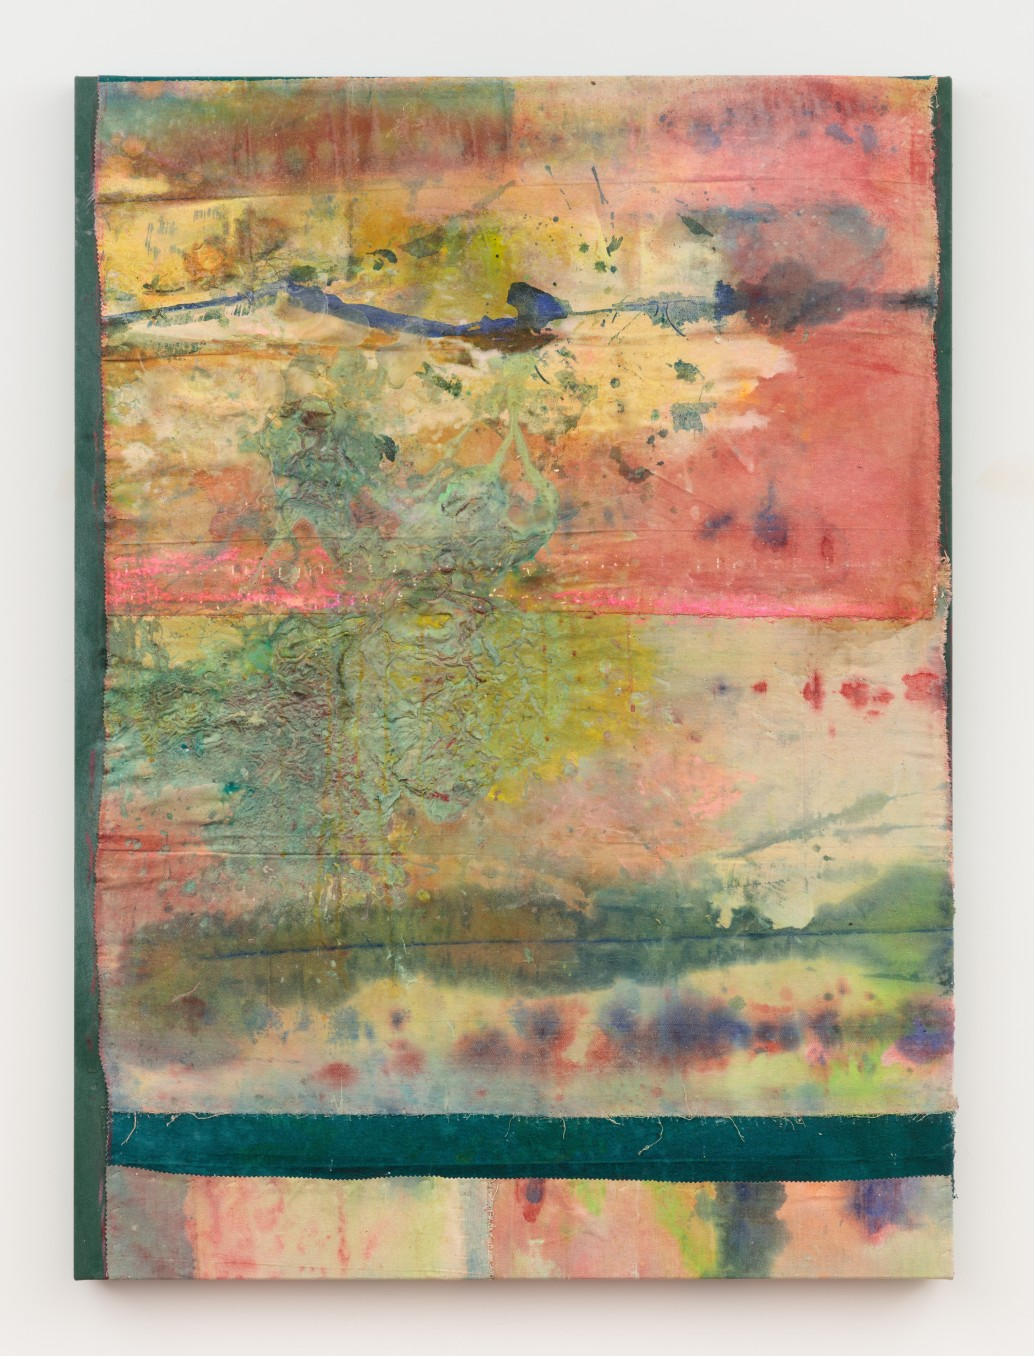 Frank Bowling, Not Rosebush Too, 2013, Acrylic on canvas, 130.4 x 95.1 cm, 51 3/8 x 37 1/2 in, Framed: 136.7 x 99.1 cm, 53 7/8 x 39 in